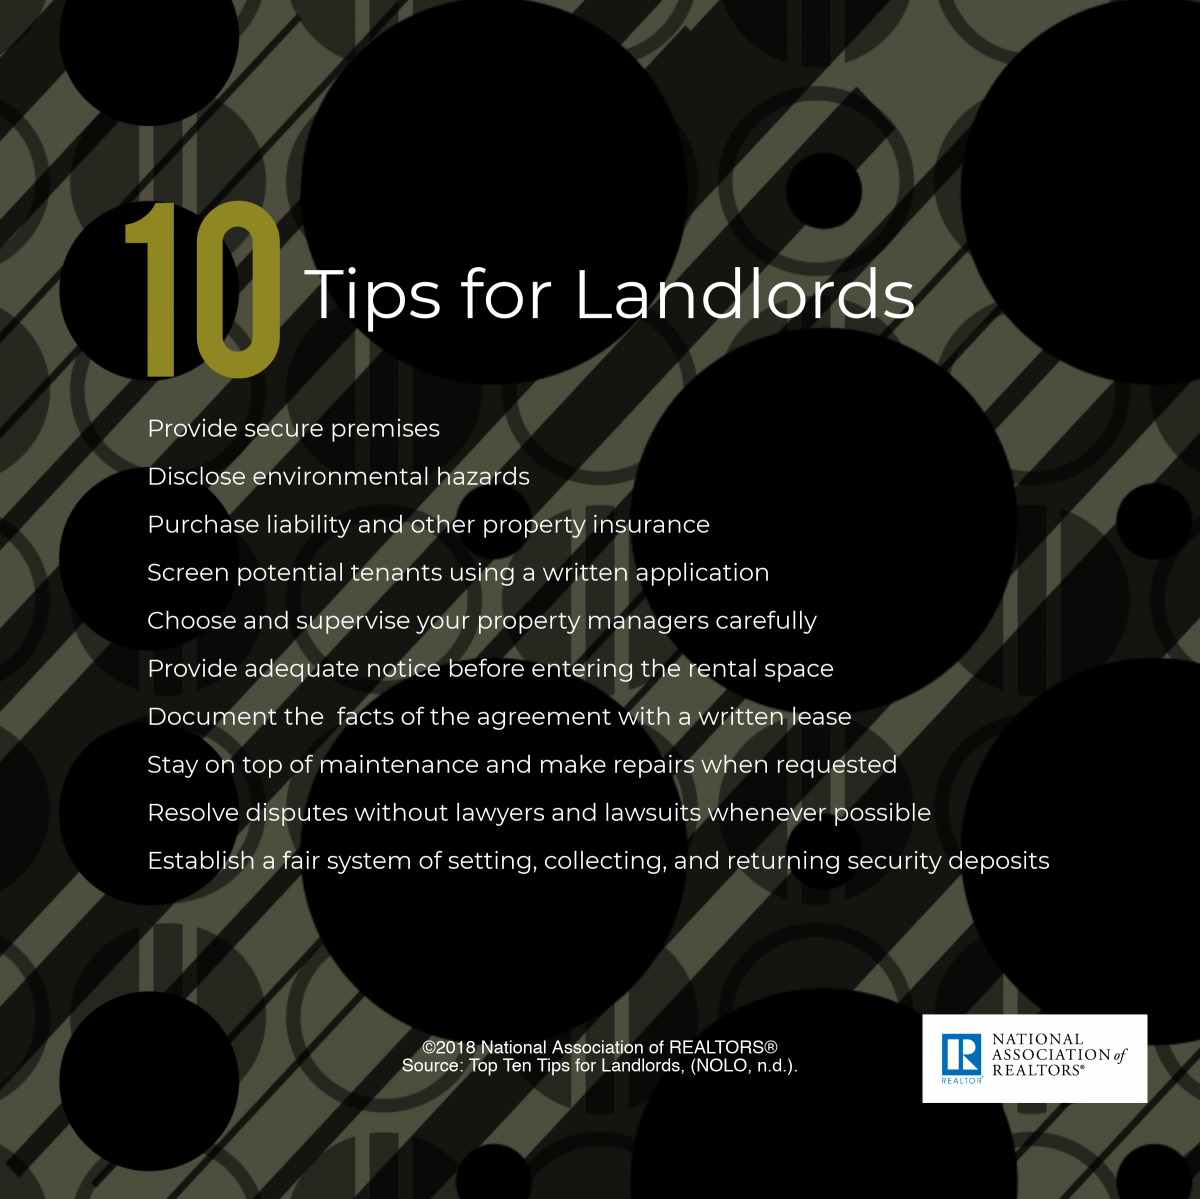 multifamily properties: 10 tips for landlords